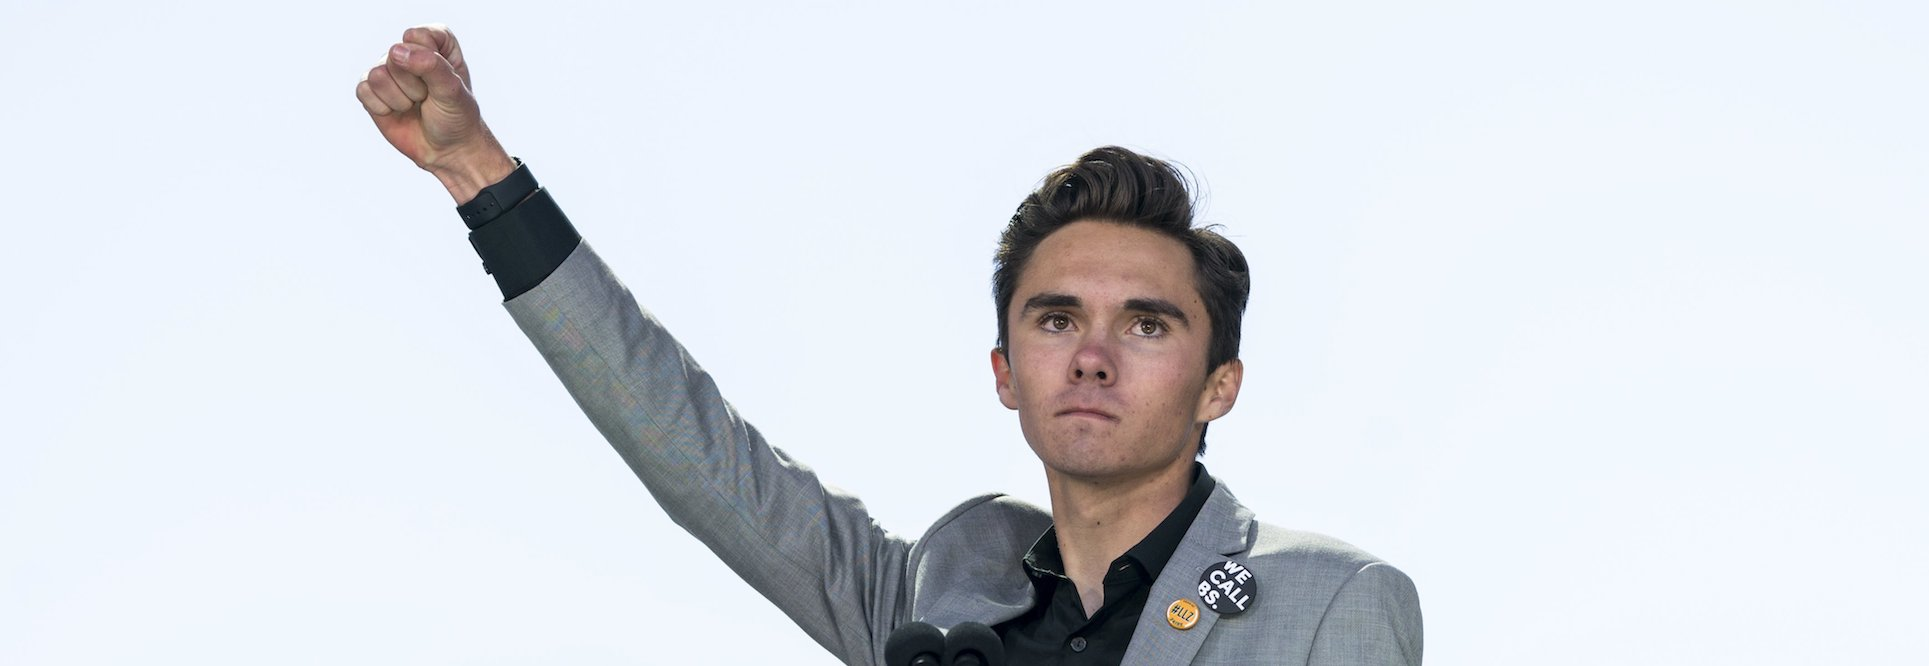 Don't mess with David Hogg